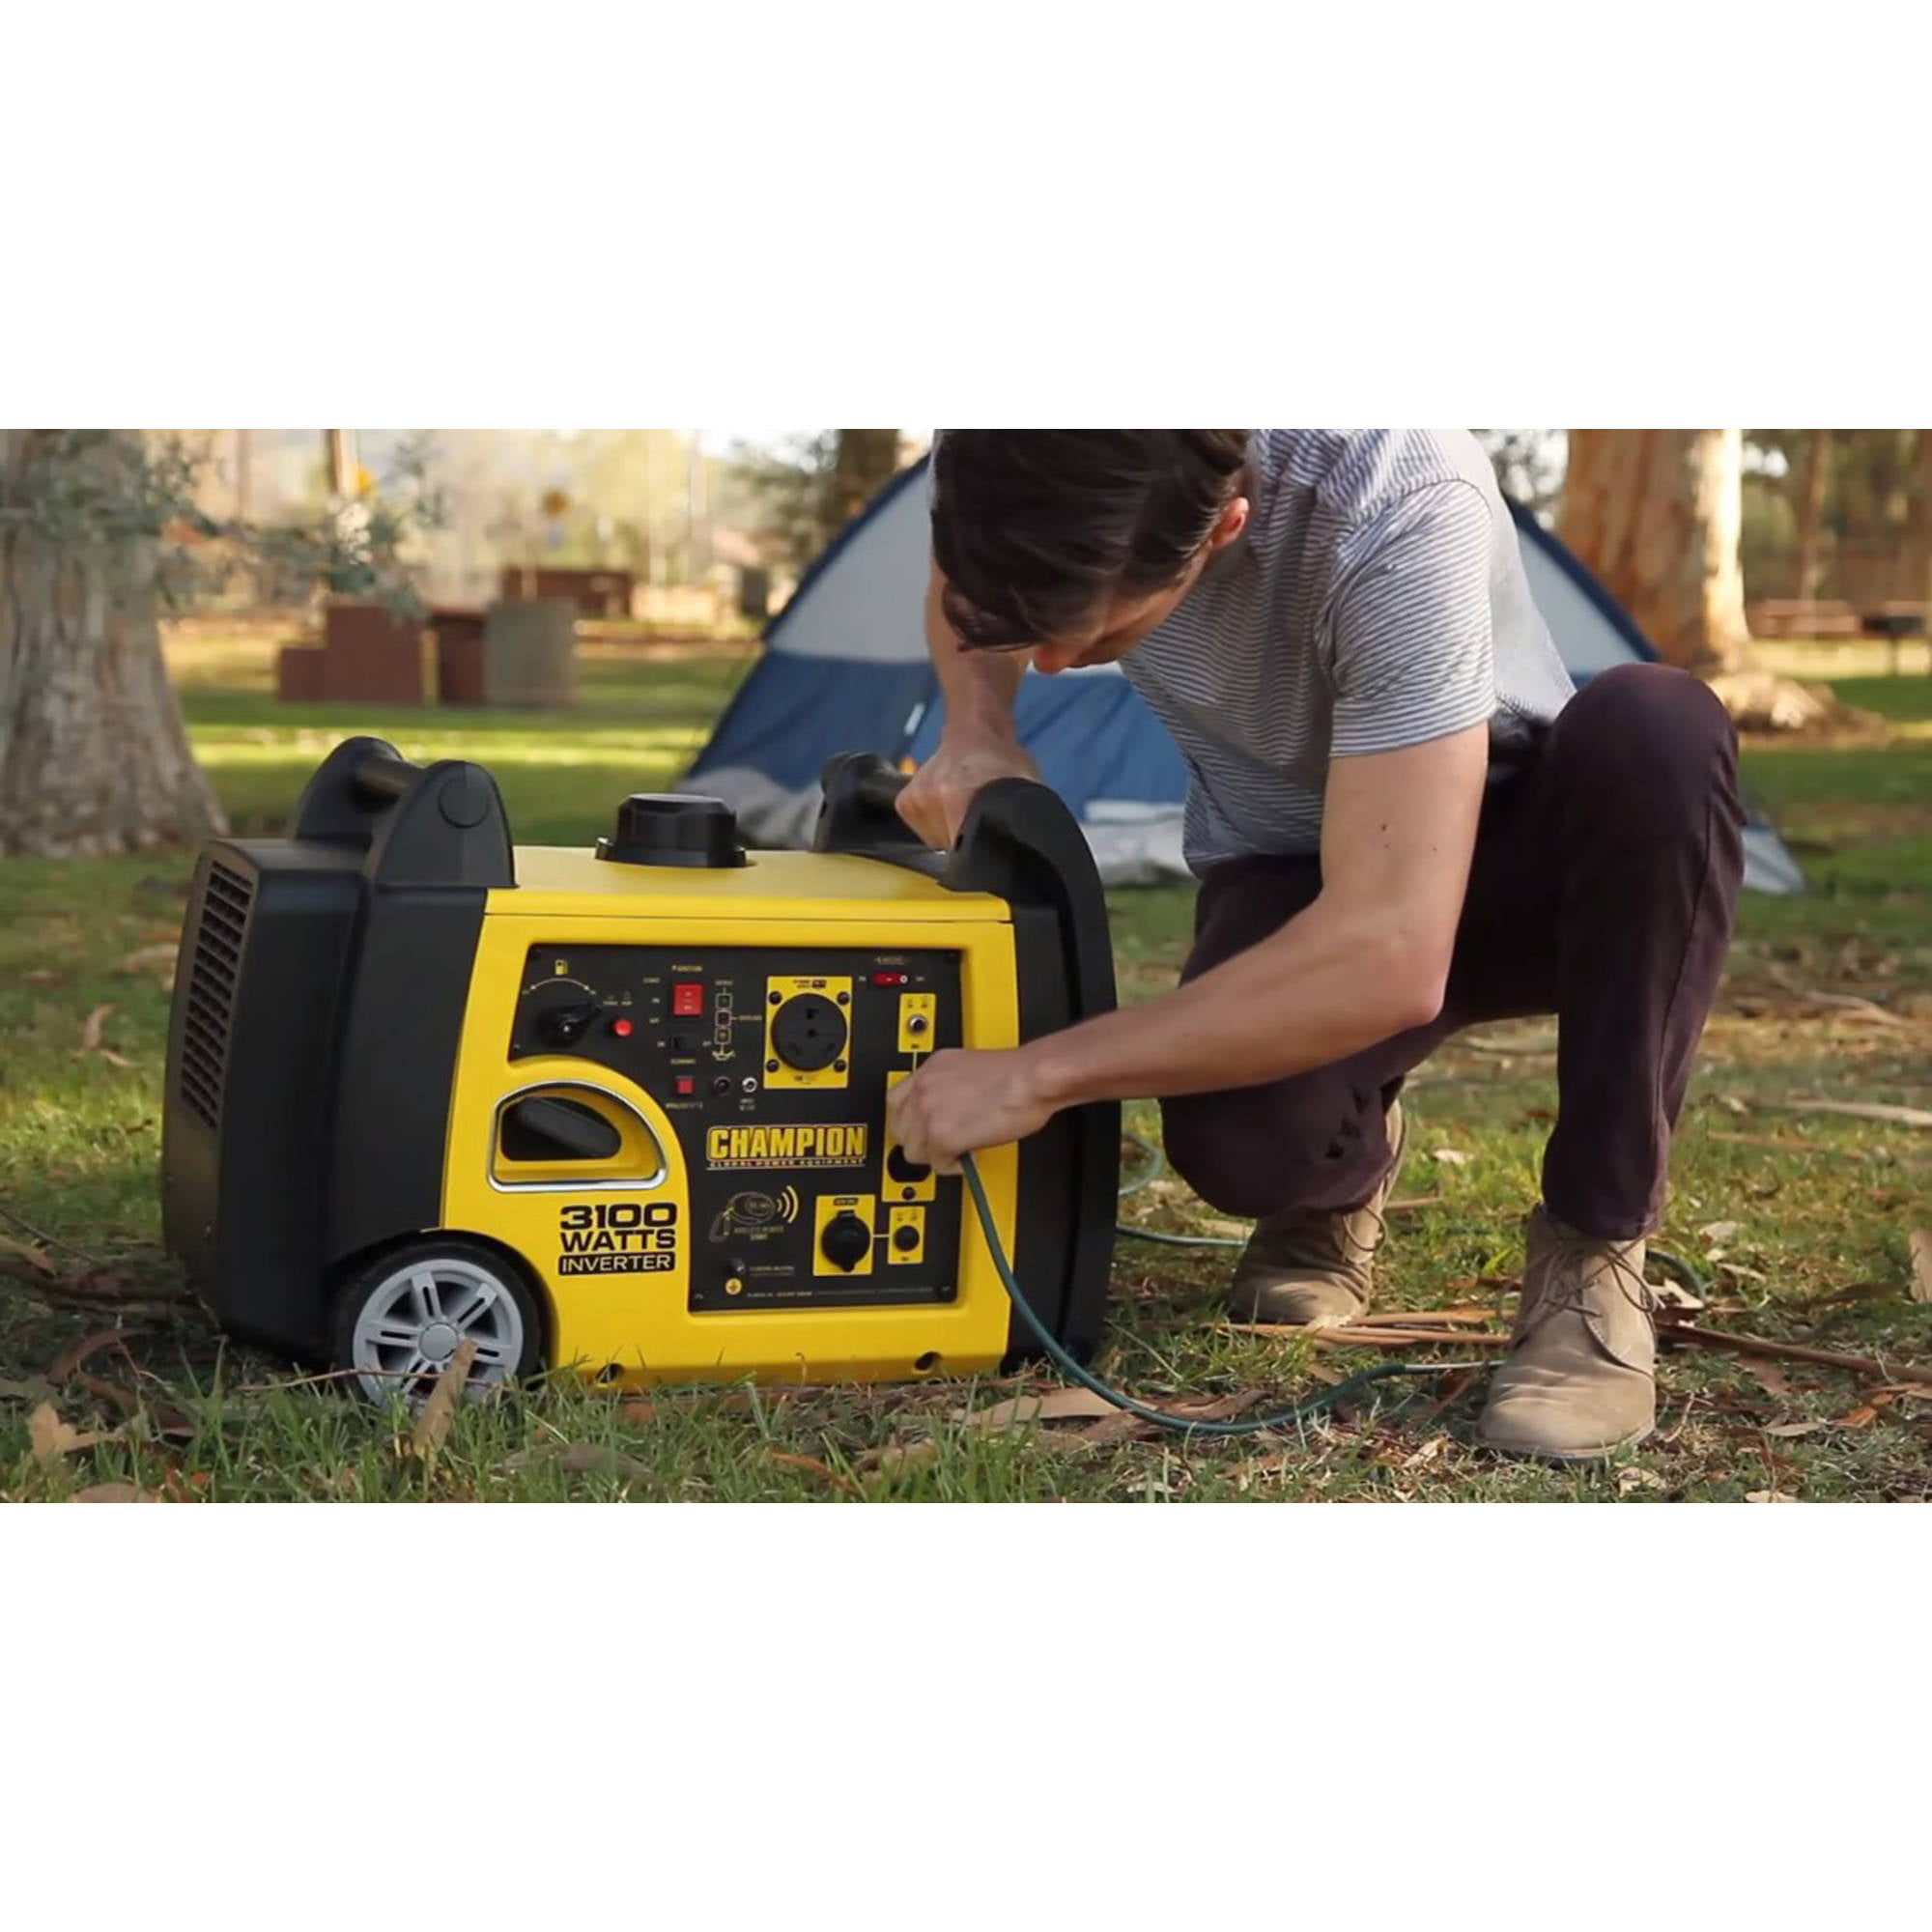 Champion 75537i 3100 Watt Rv Ready Portable Inverter Generator With Wireless Remote Start